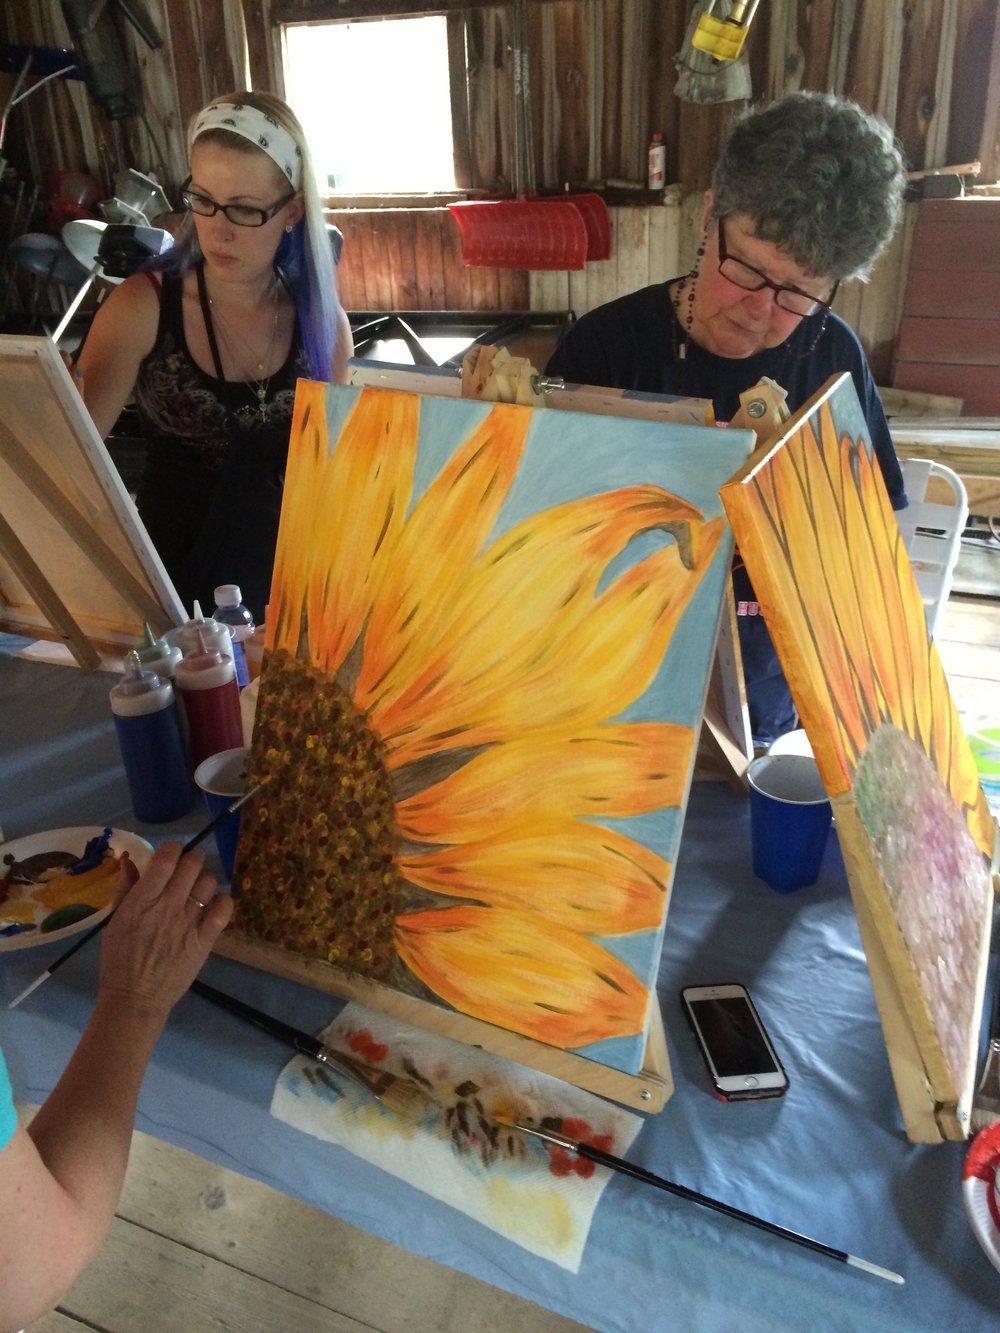 Painting Sunflowers in a barn